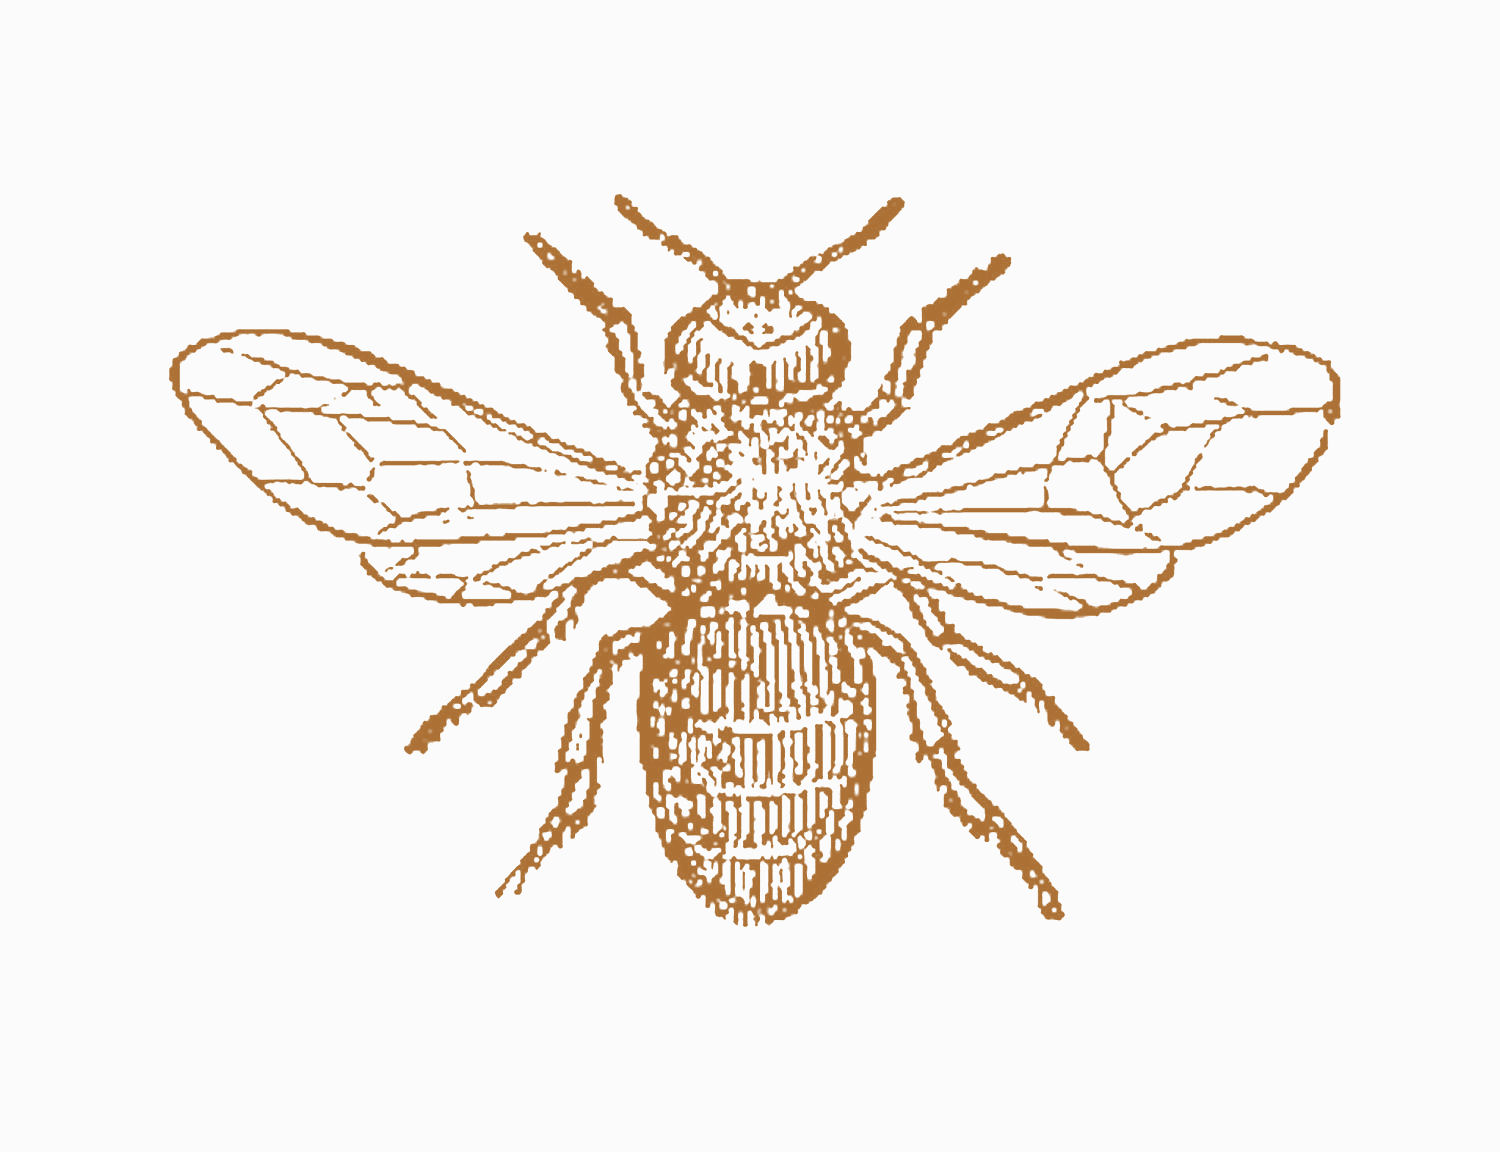 Honey bee queen life cyclo clipart black and white.